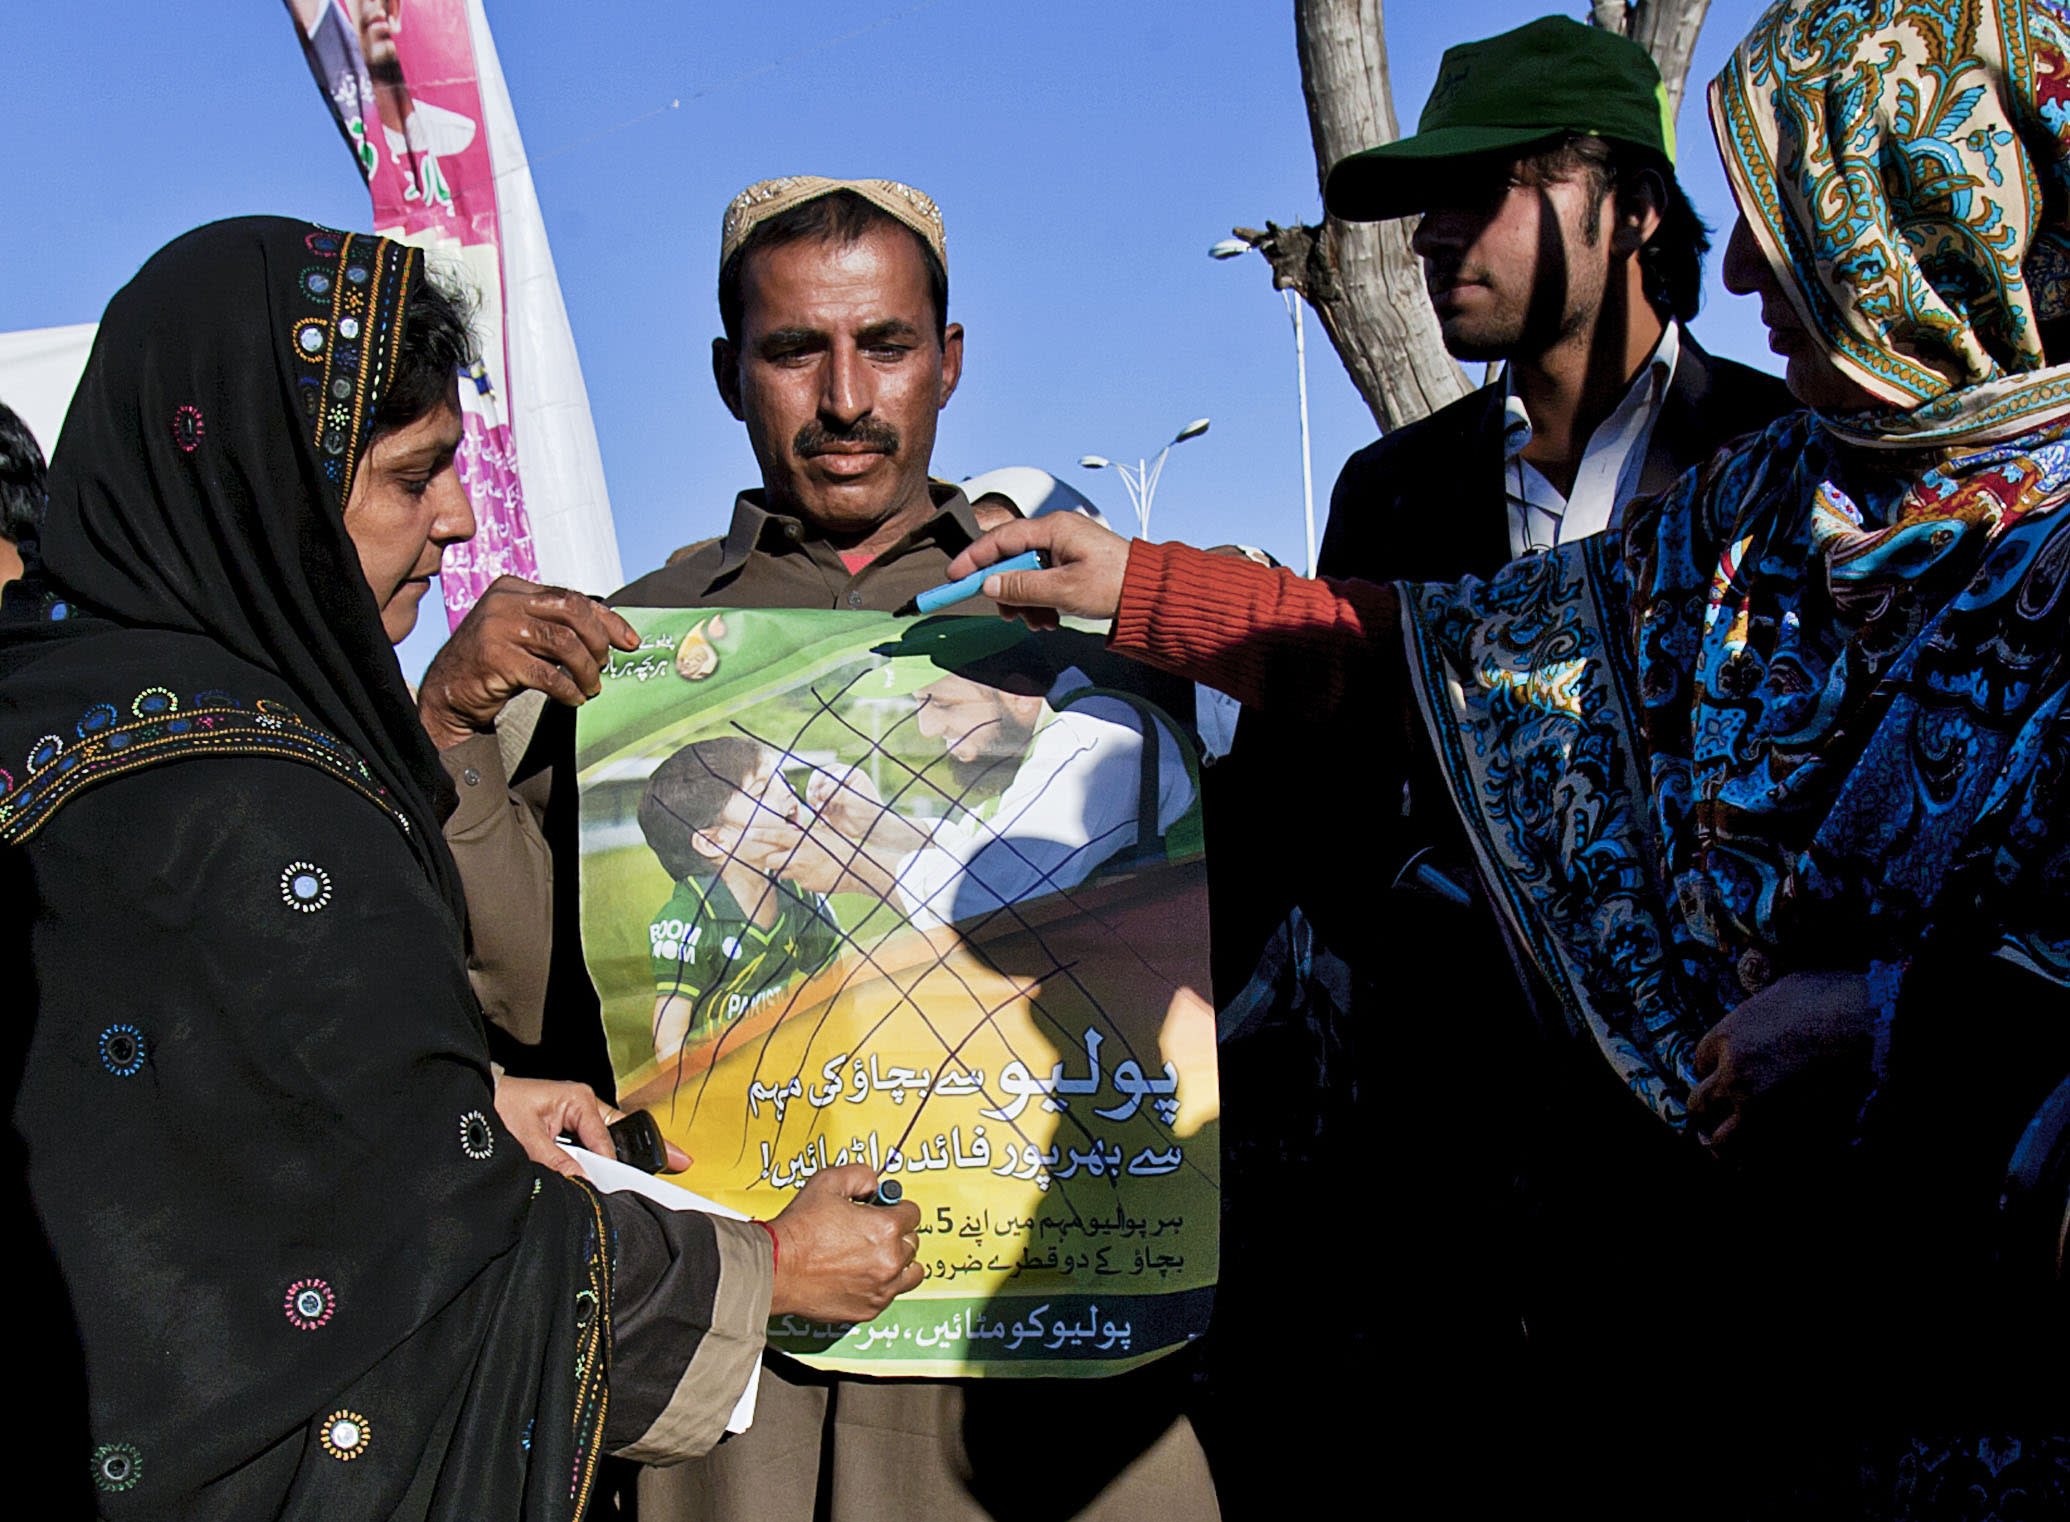 Pakistani polio workers cross out an anti-polio campaign poster during a demonstration against the killing of their colleagues, in Islamabad, Pakistan, Wednesday, Dec. 19, 2012. Gunmen shot dead a woman working on U.N.-backed polio vaccination efforts and her driver in northwestern Pakistan, officials said, just a ay after similar attacks across the country killed several female polio workers. (AP Photo/Anjum Naveed)